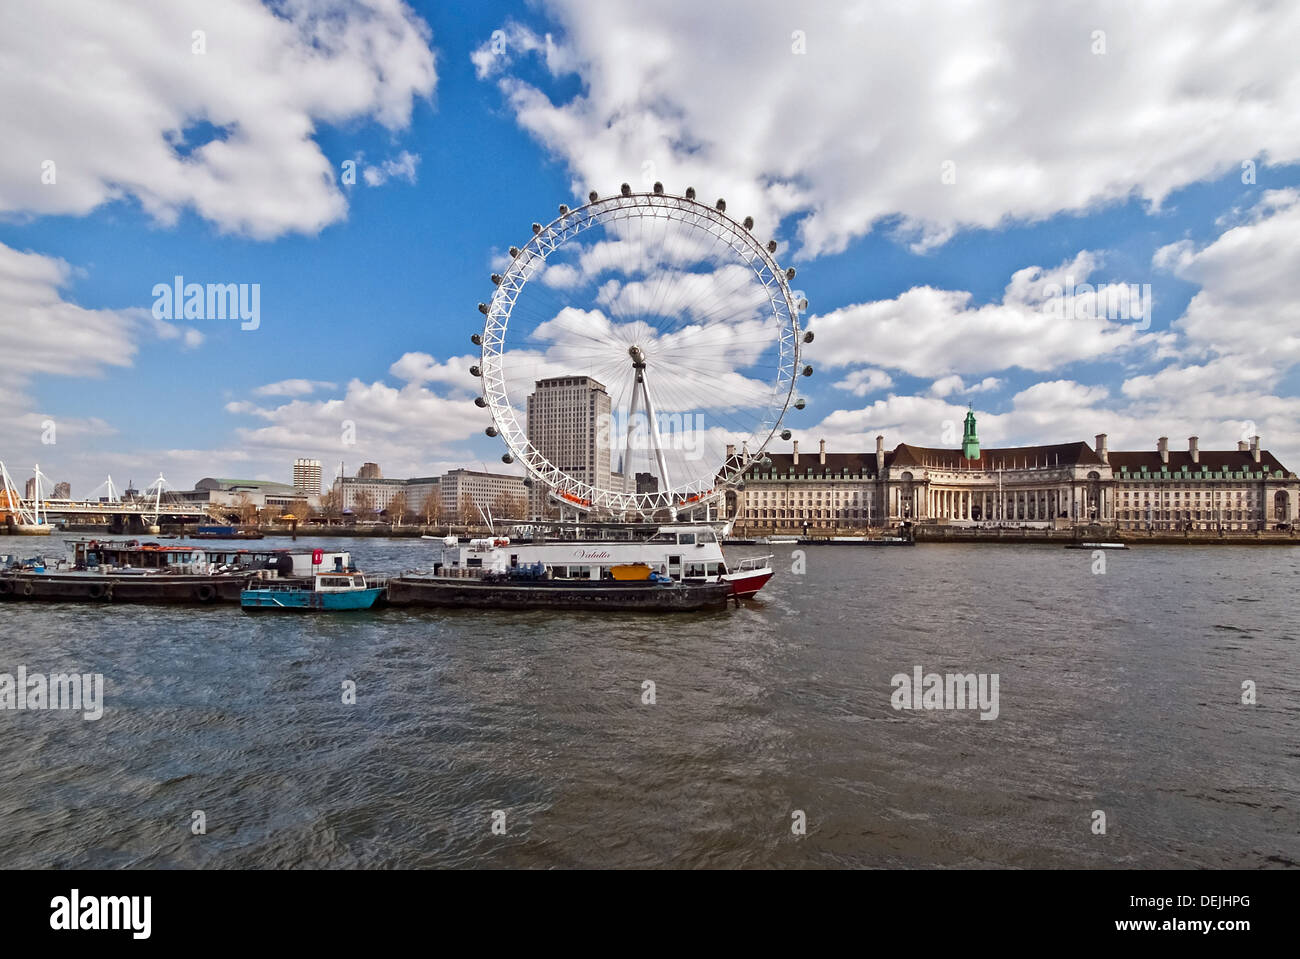 River Thames and cruise Boats with the Millennium Wheel in Background - Stock Image